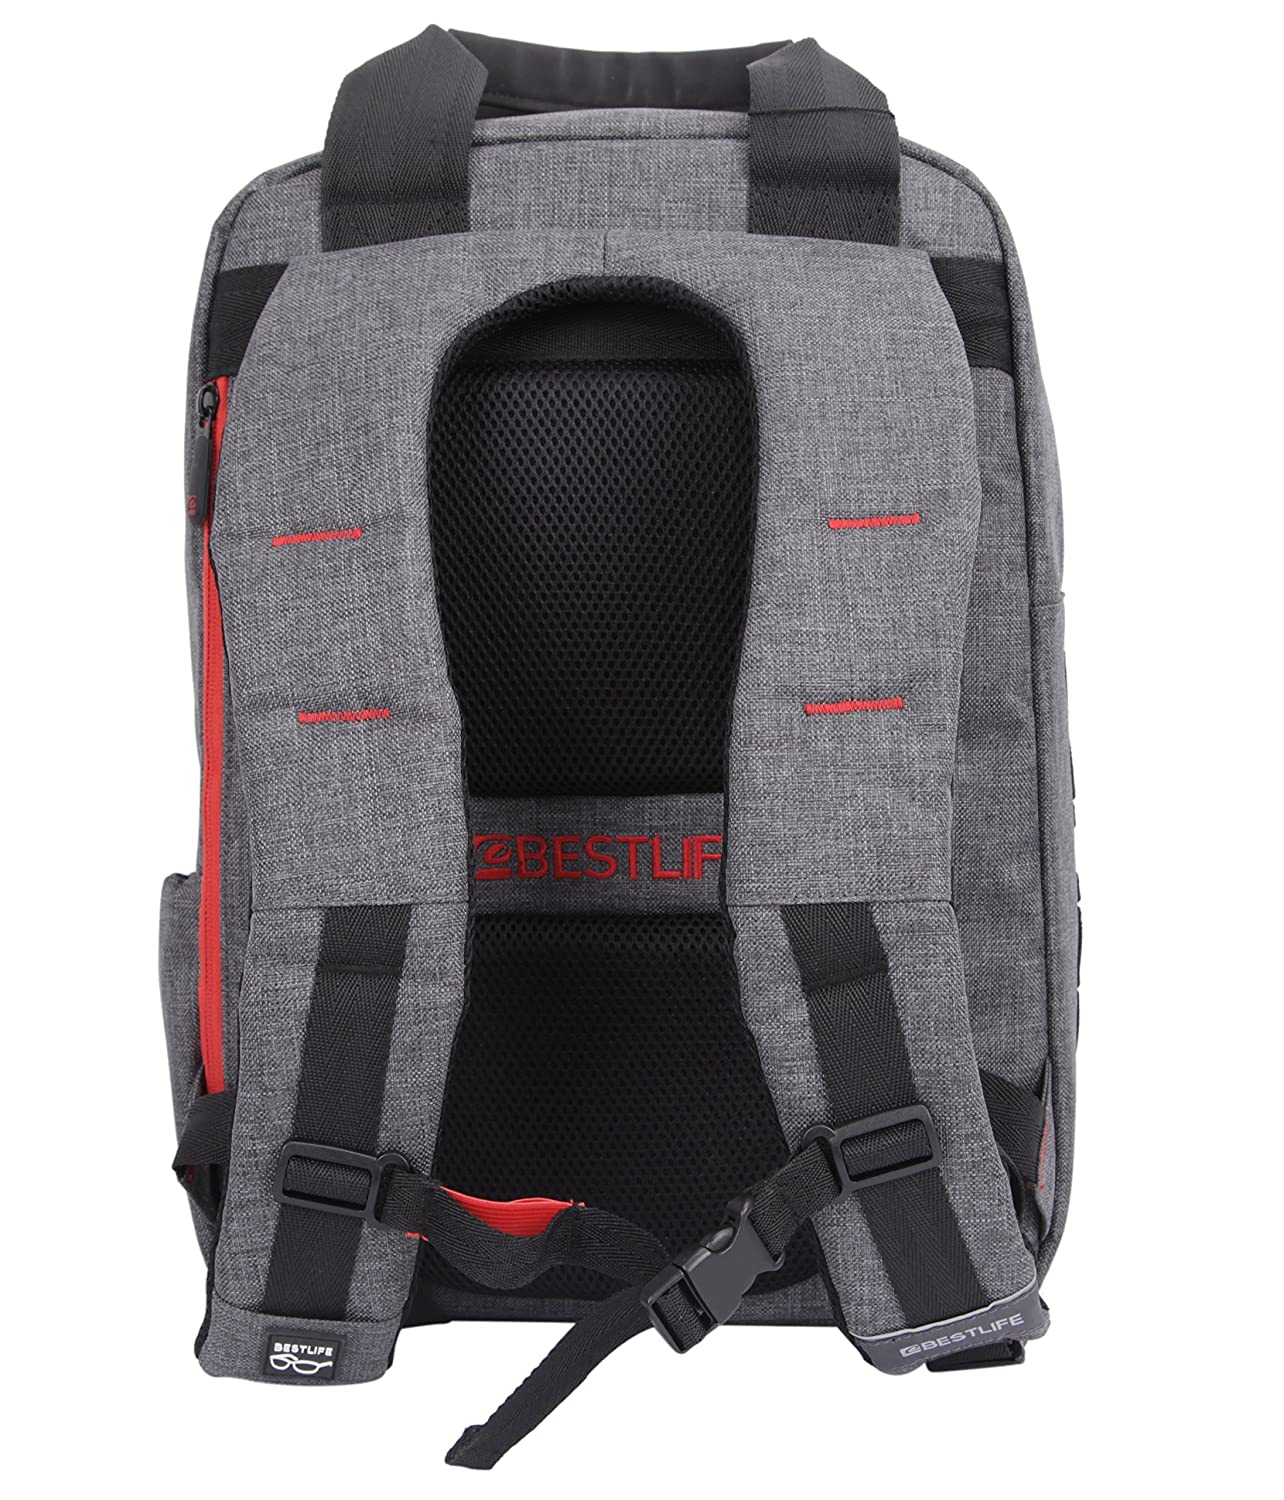 Amazon.com: BestLife Backpack BB - 3202G - 15.6